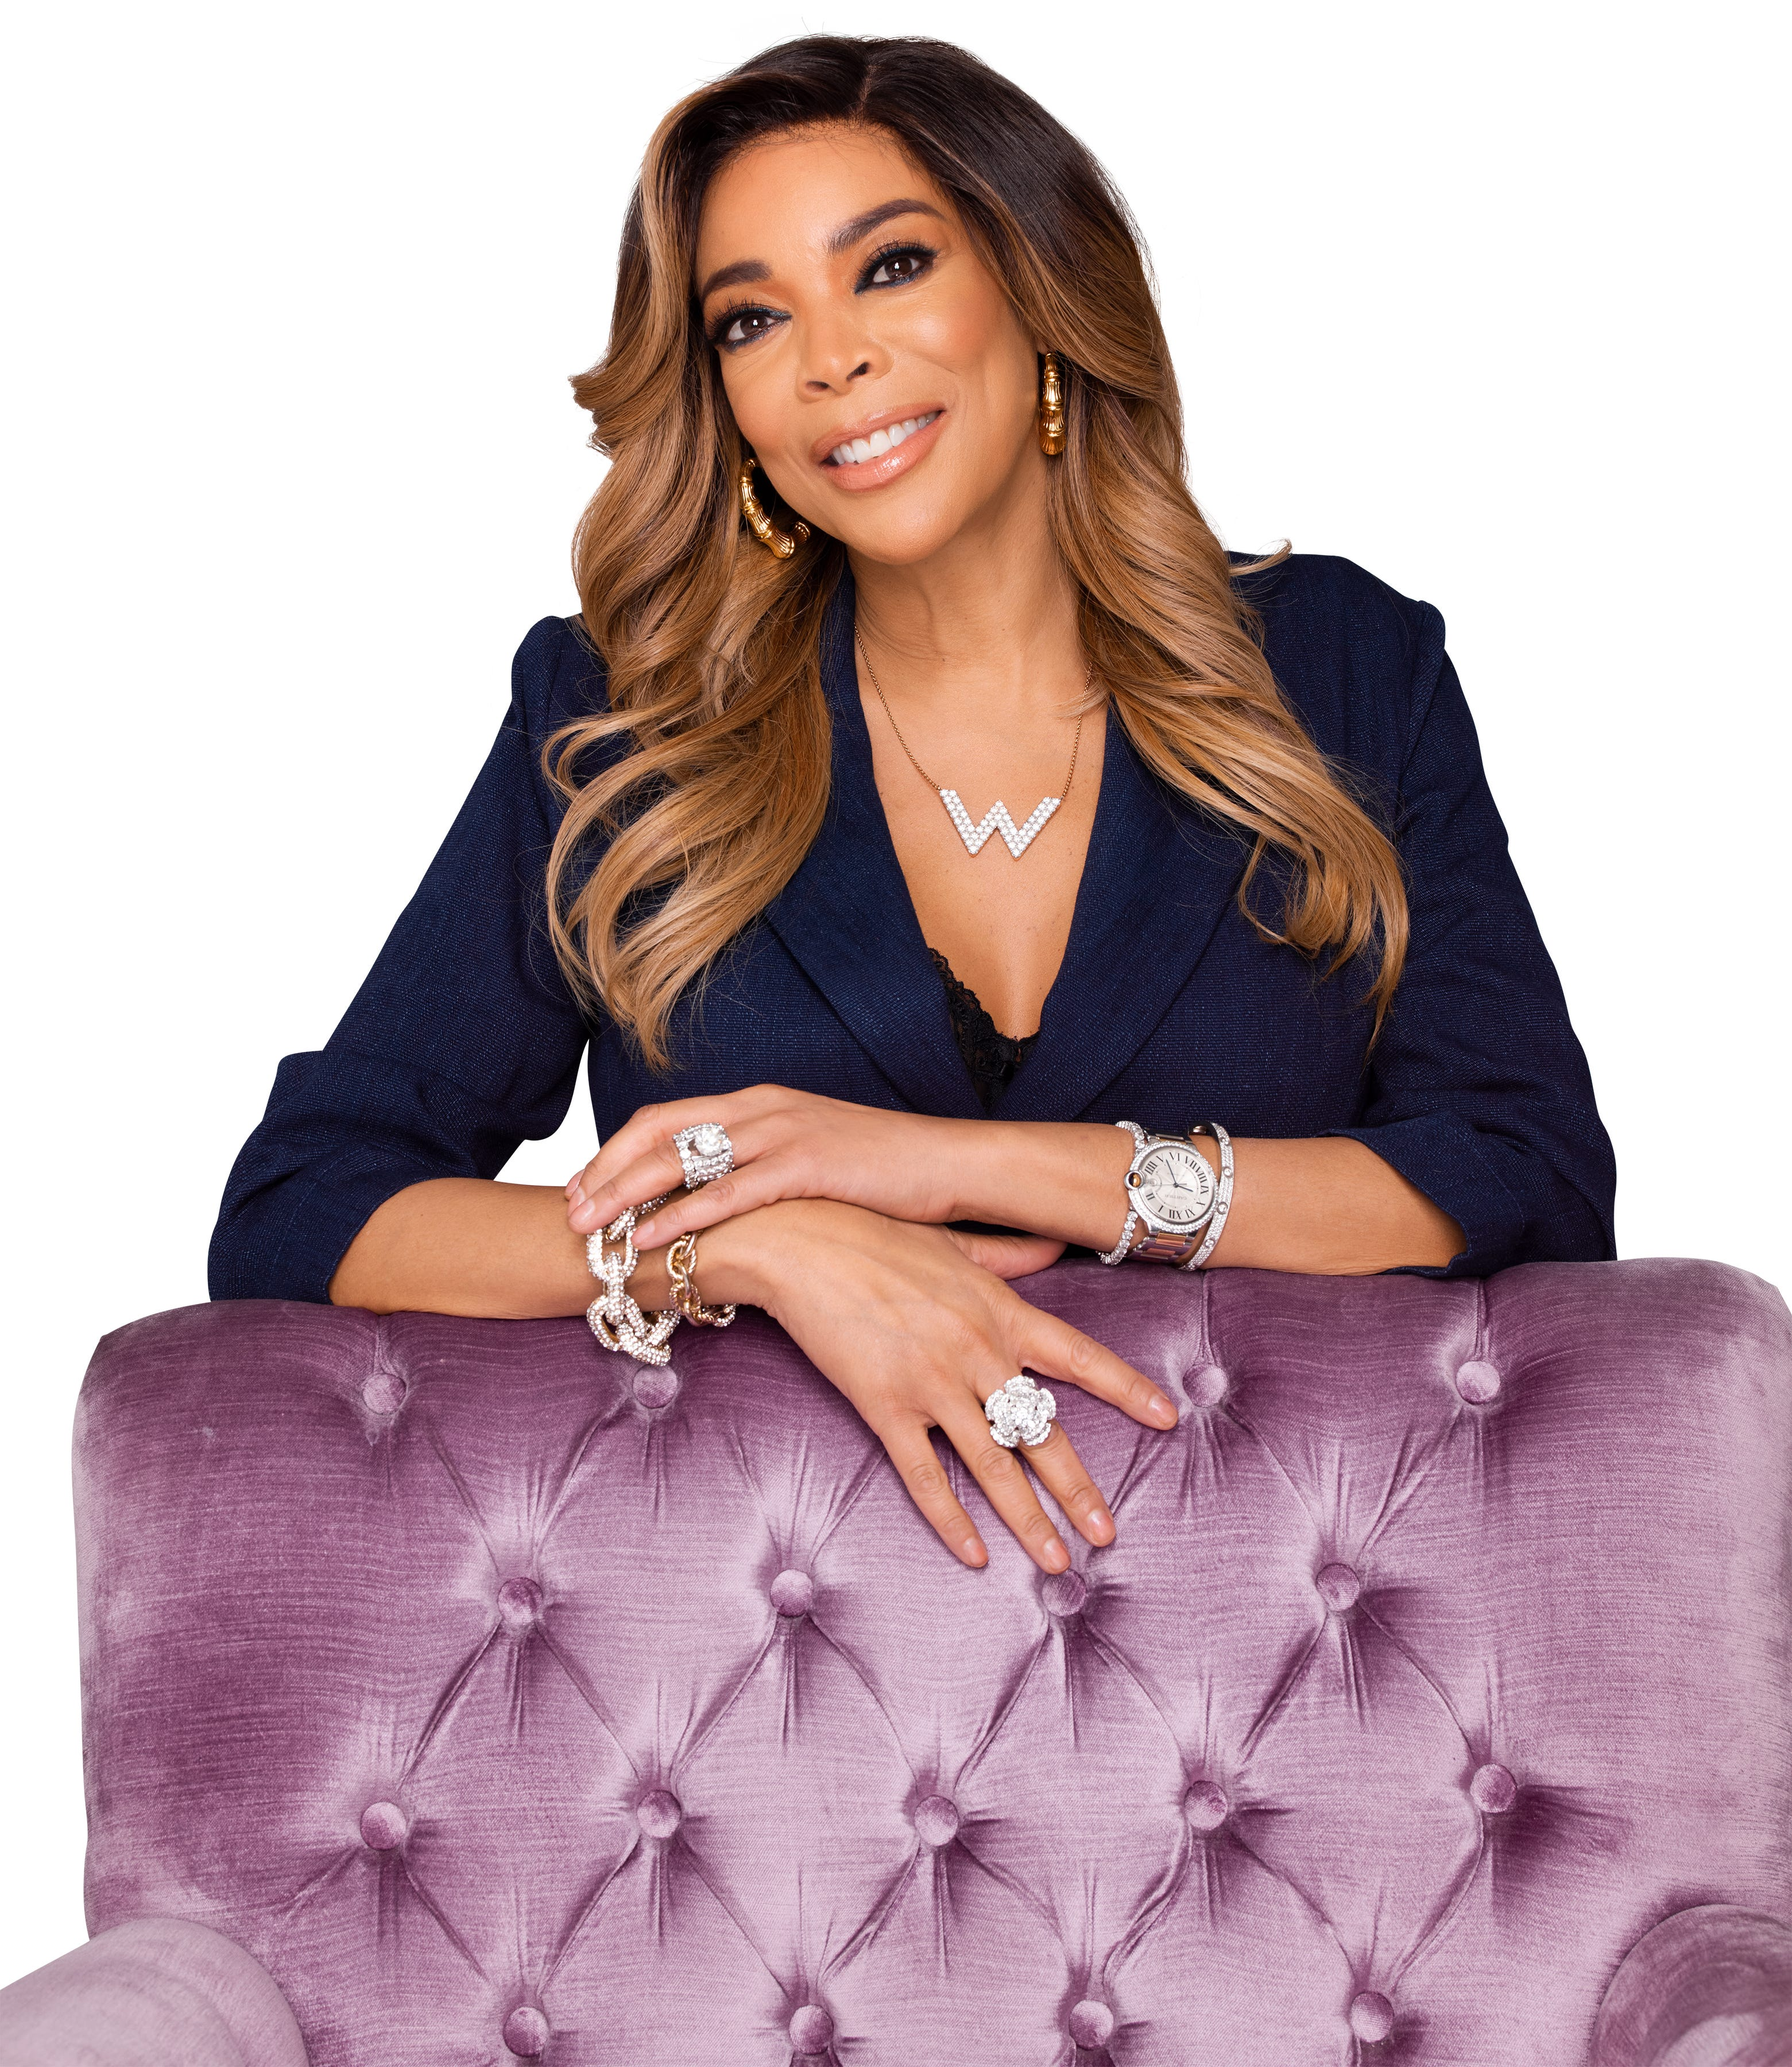 Wendy Williams (actress) nude (81 foto and video), Pussy, Sideboobs, Twitter, in bikini 2019